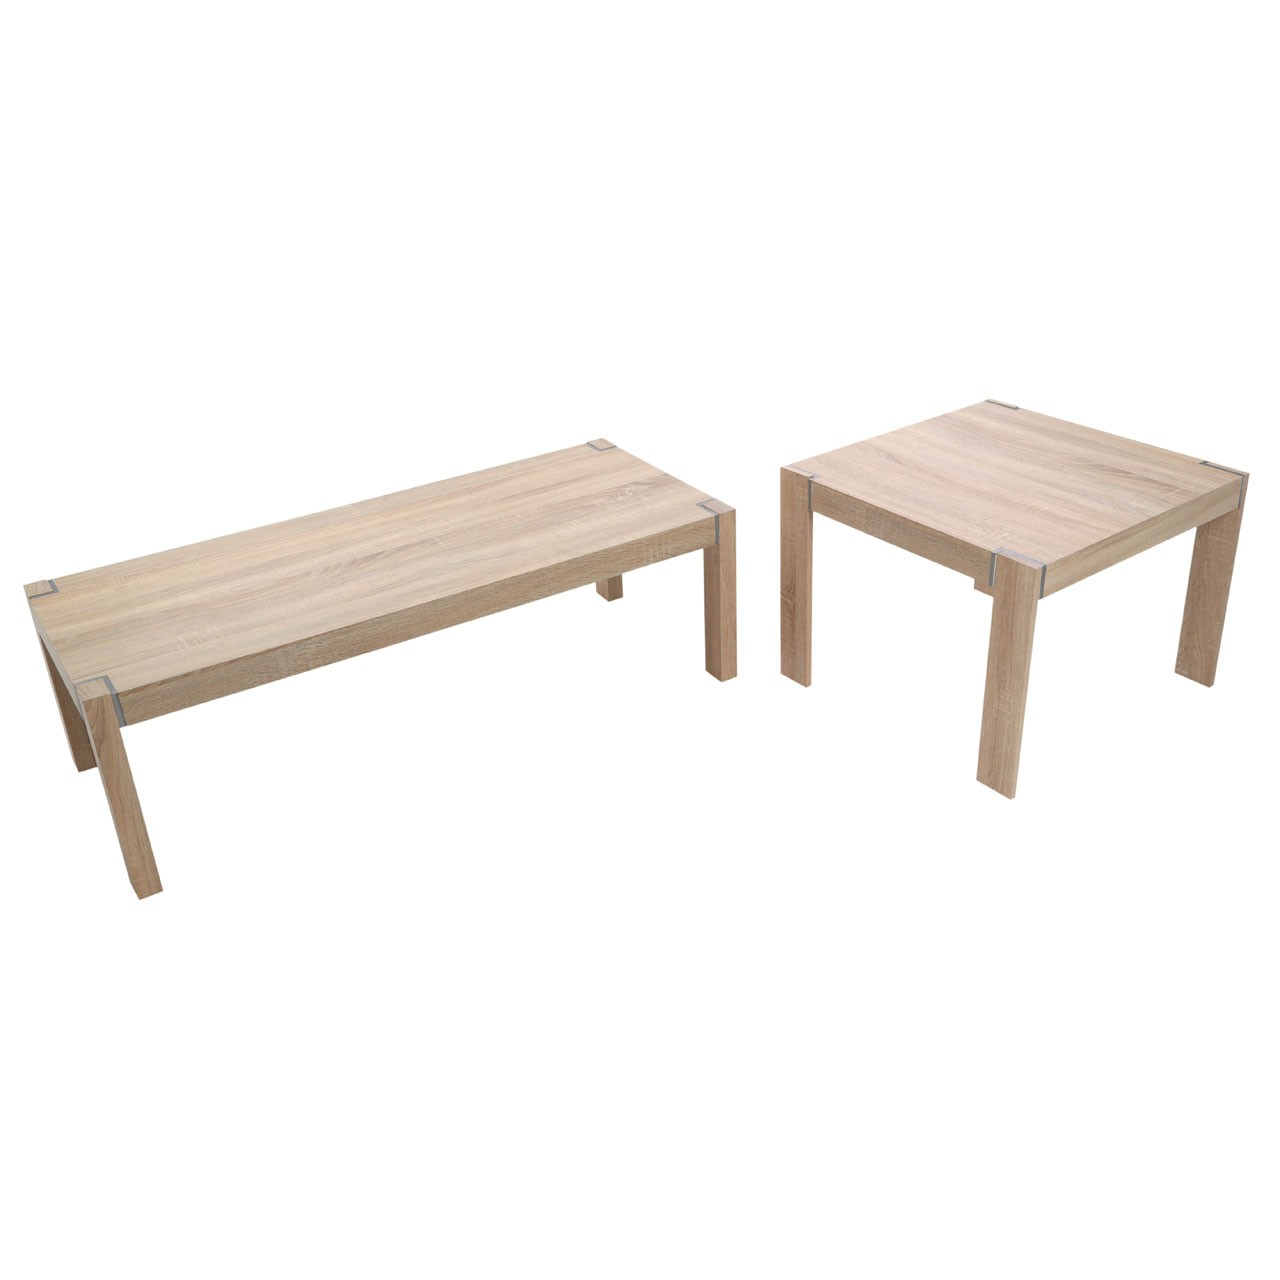 Loki Set of 2 Tables Natural Oak Veneer